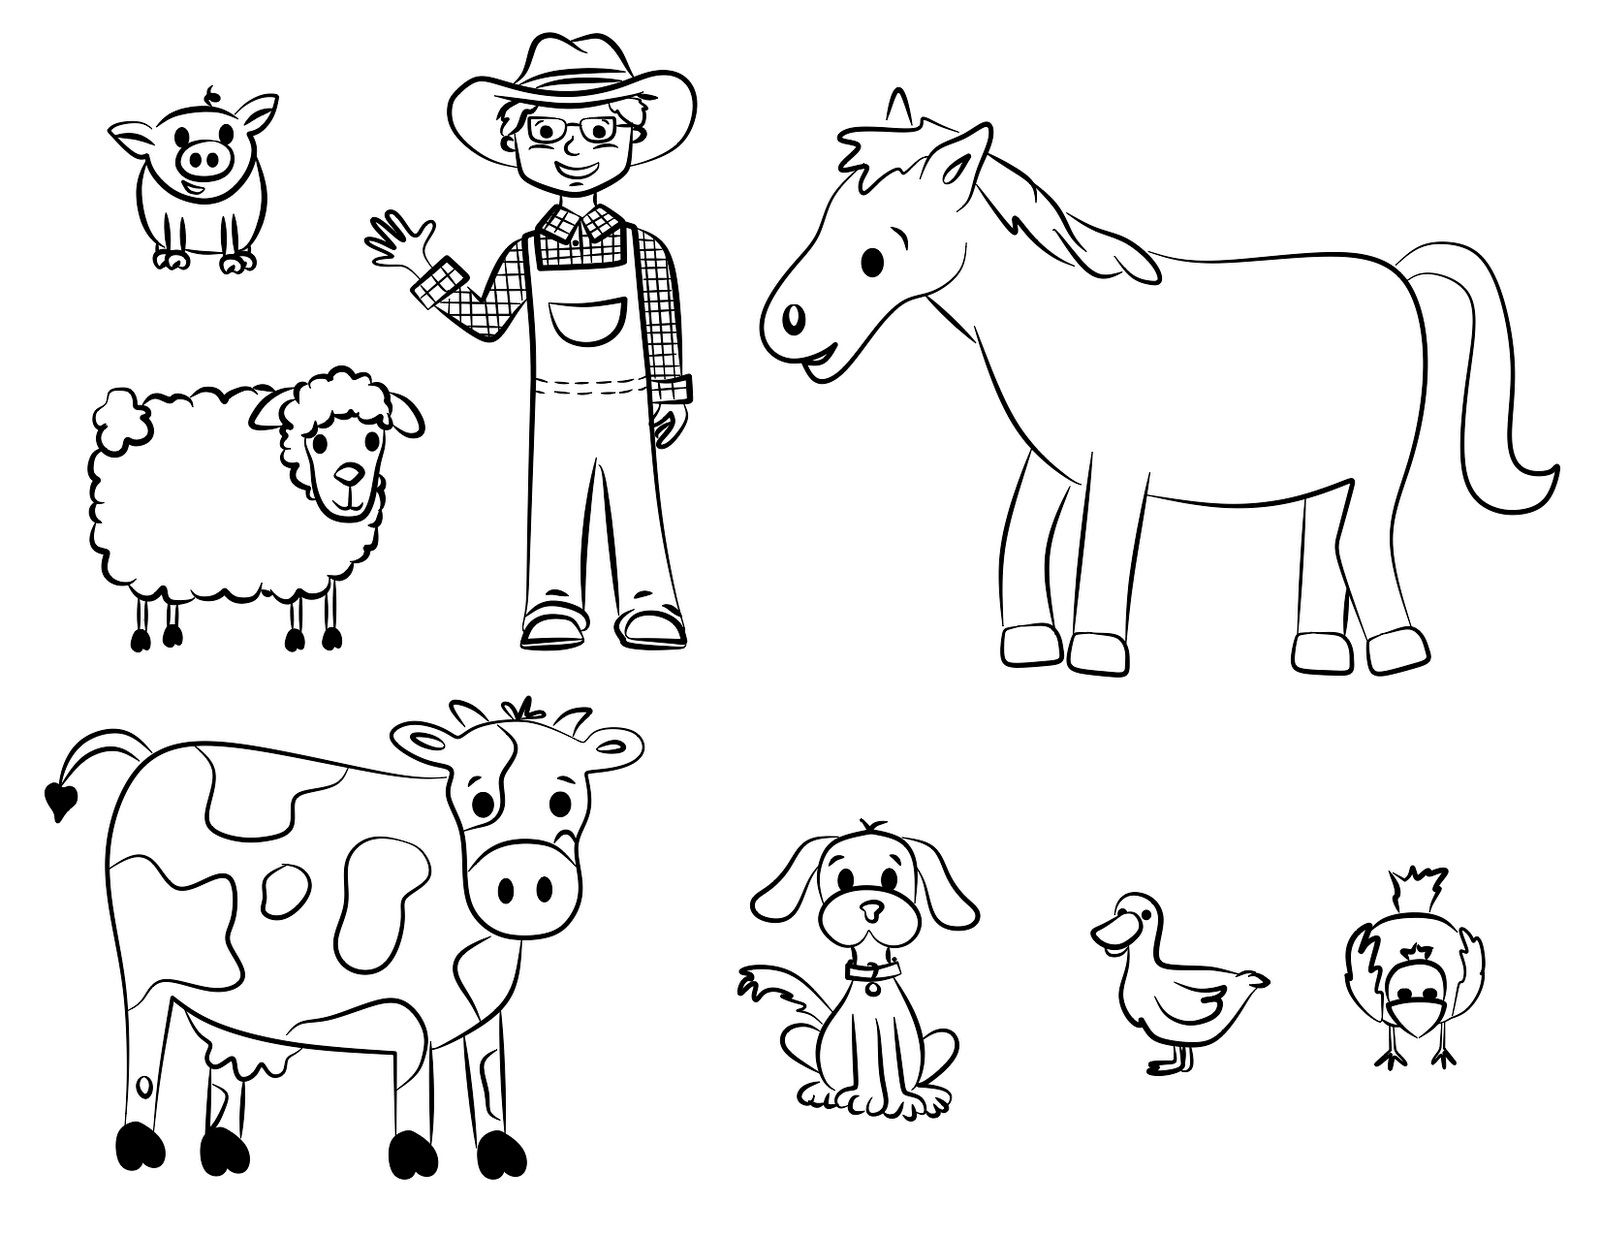 Coloring Pages : Farmnimal Coloring Book Free Printable Pages For - Free Printable Farm Animal Pictures